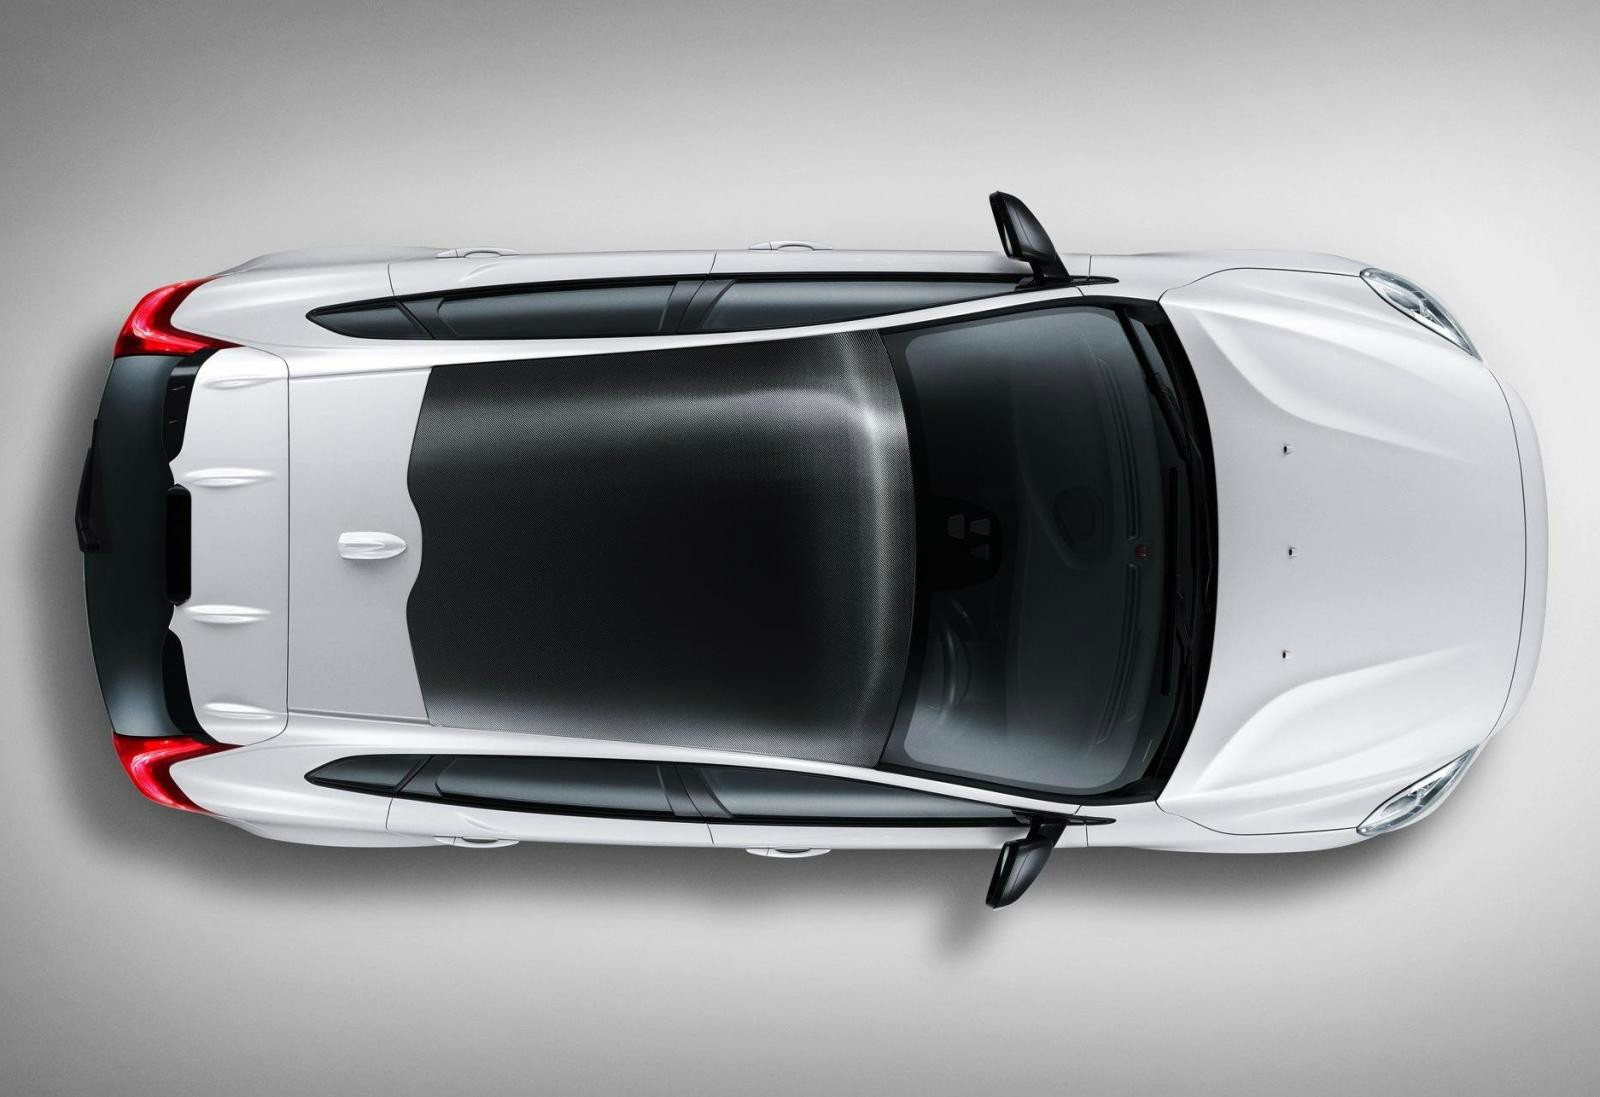 2015 Volvo V40 Now Available With A Carbon Fiber Roof And